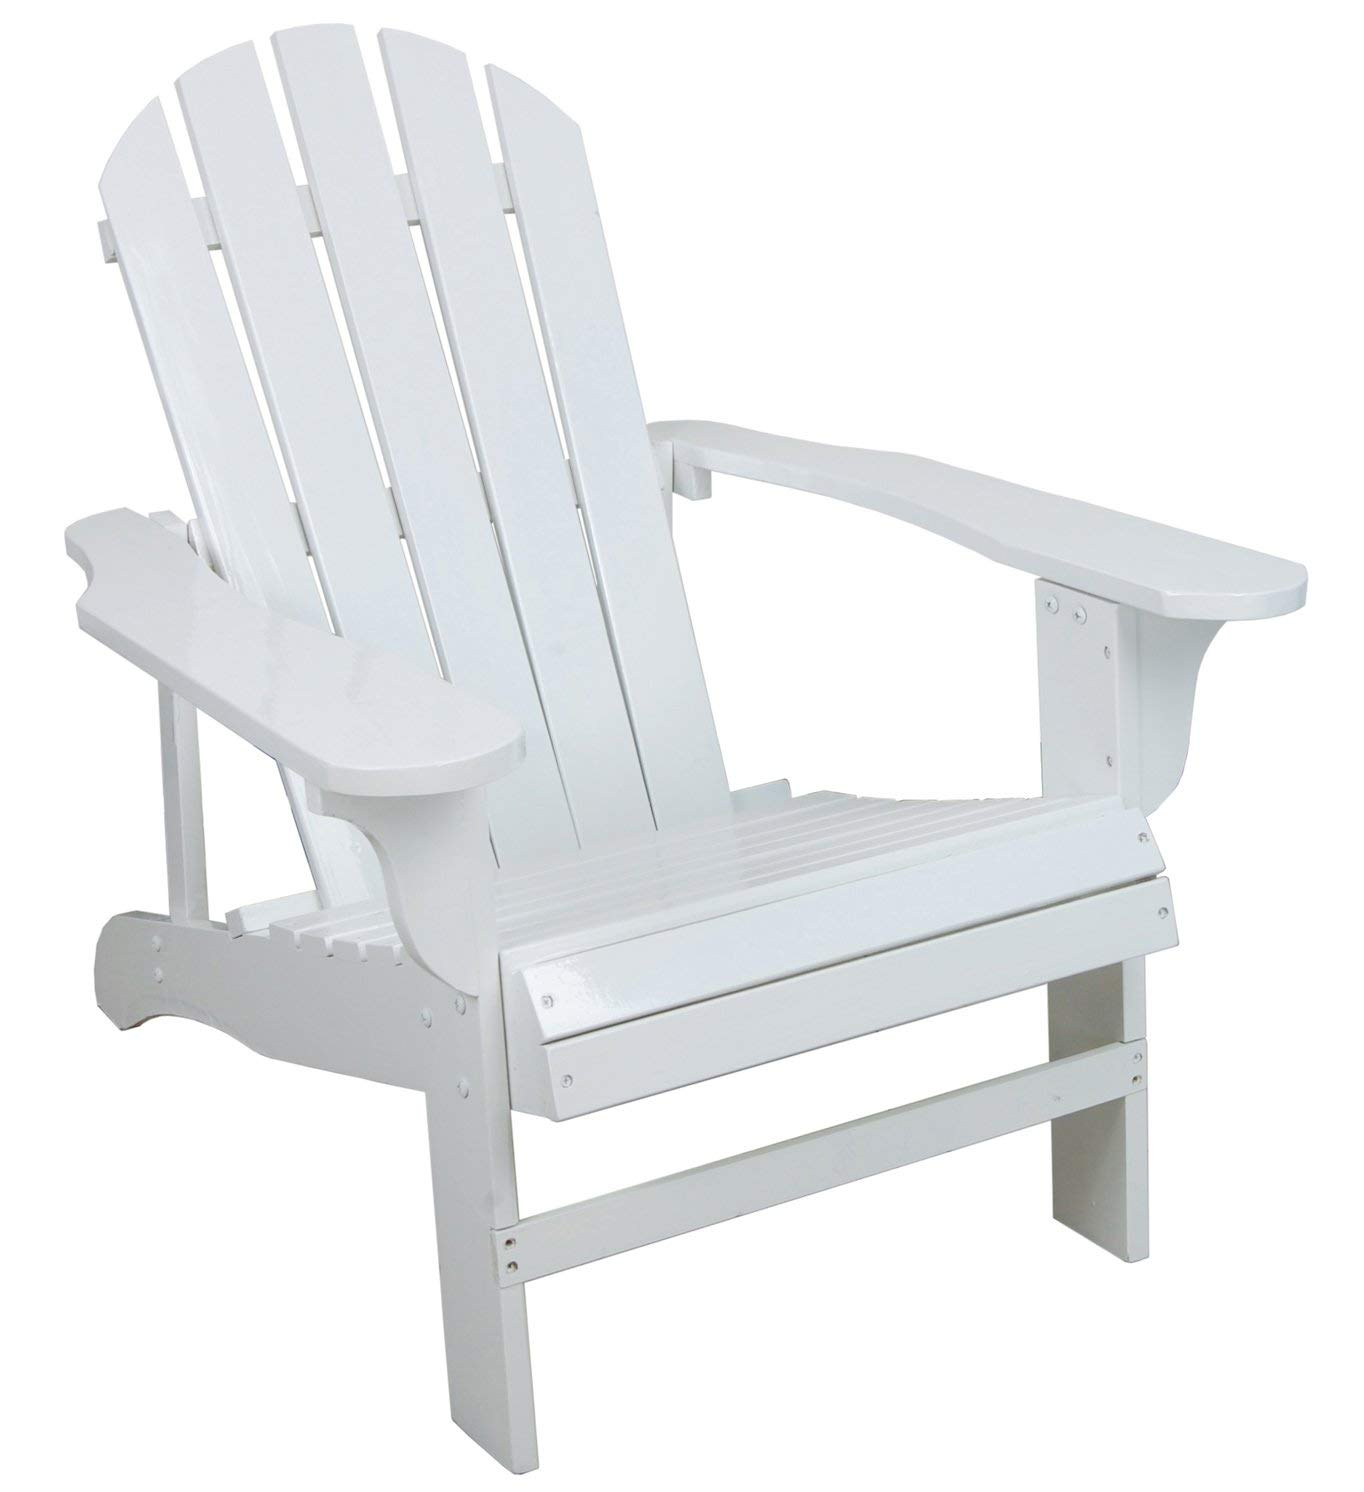 adirondack chairs amazon.com : classic white painted wood adirondack chair : chaise lounges XFCZQSF